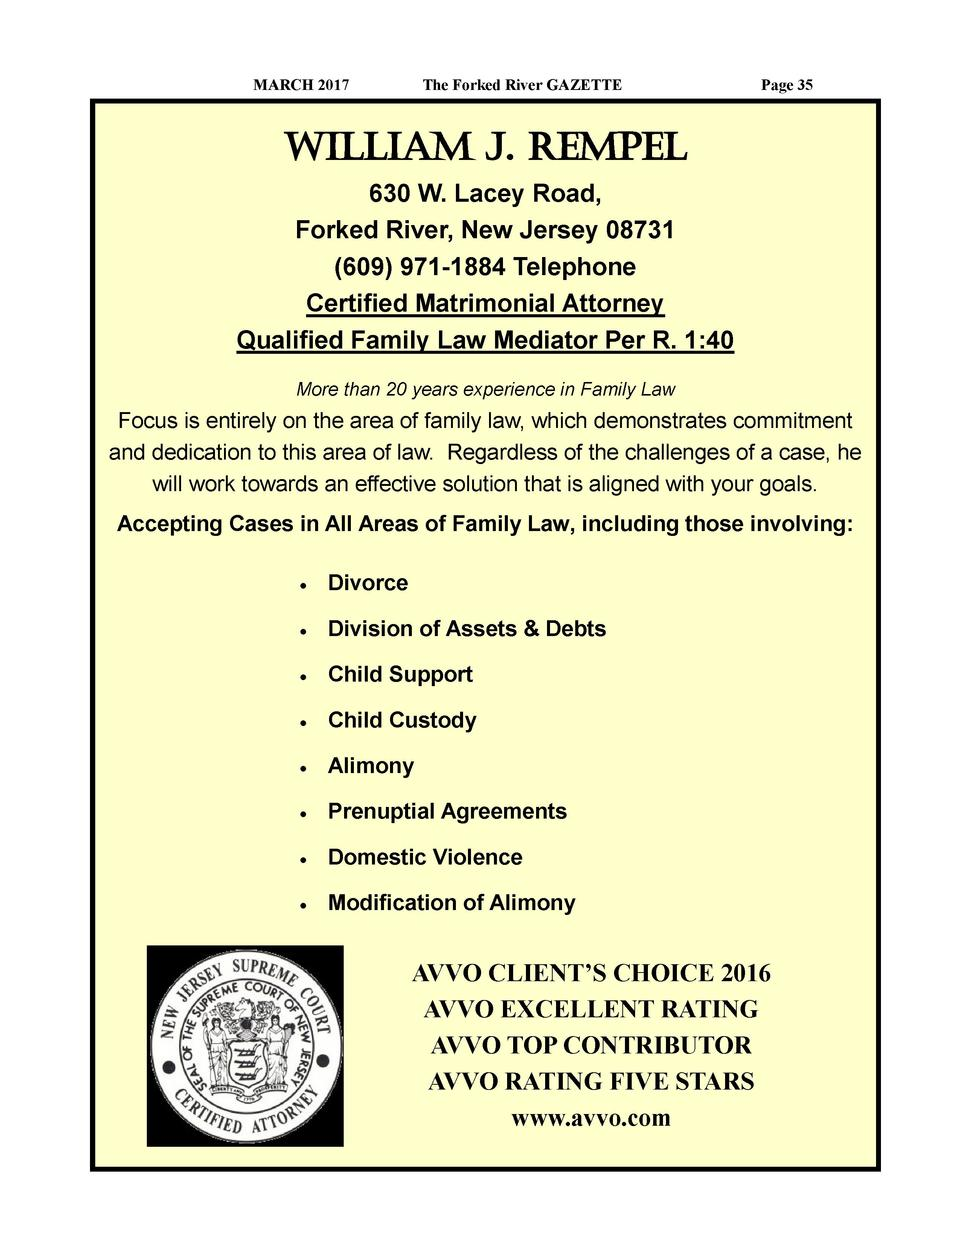 MARCH 2017  The Forked River GAZETTE  Page 35  William J. Rempel 630 W. Lacey Road, Forked River, New Jersey 08731  609  9...